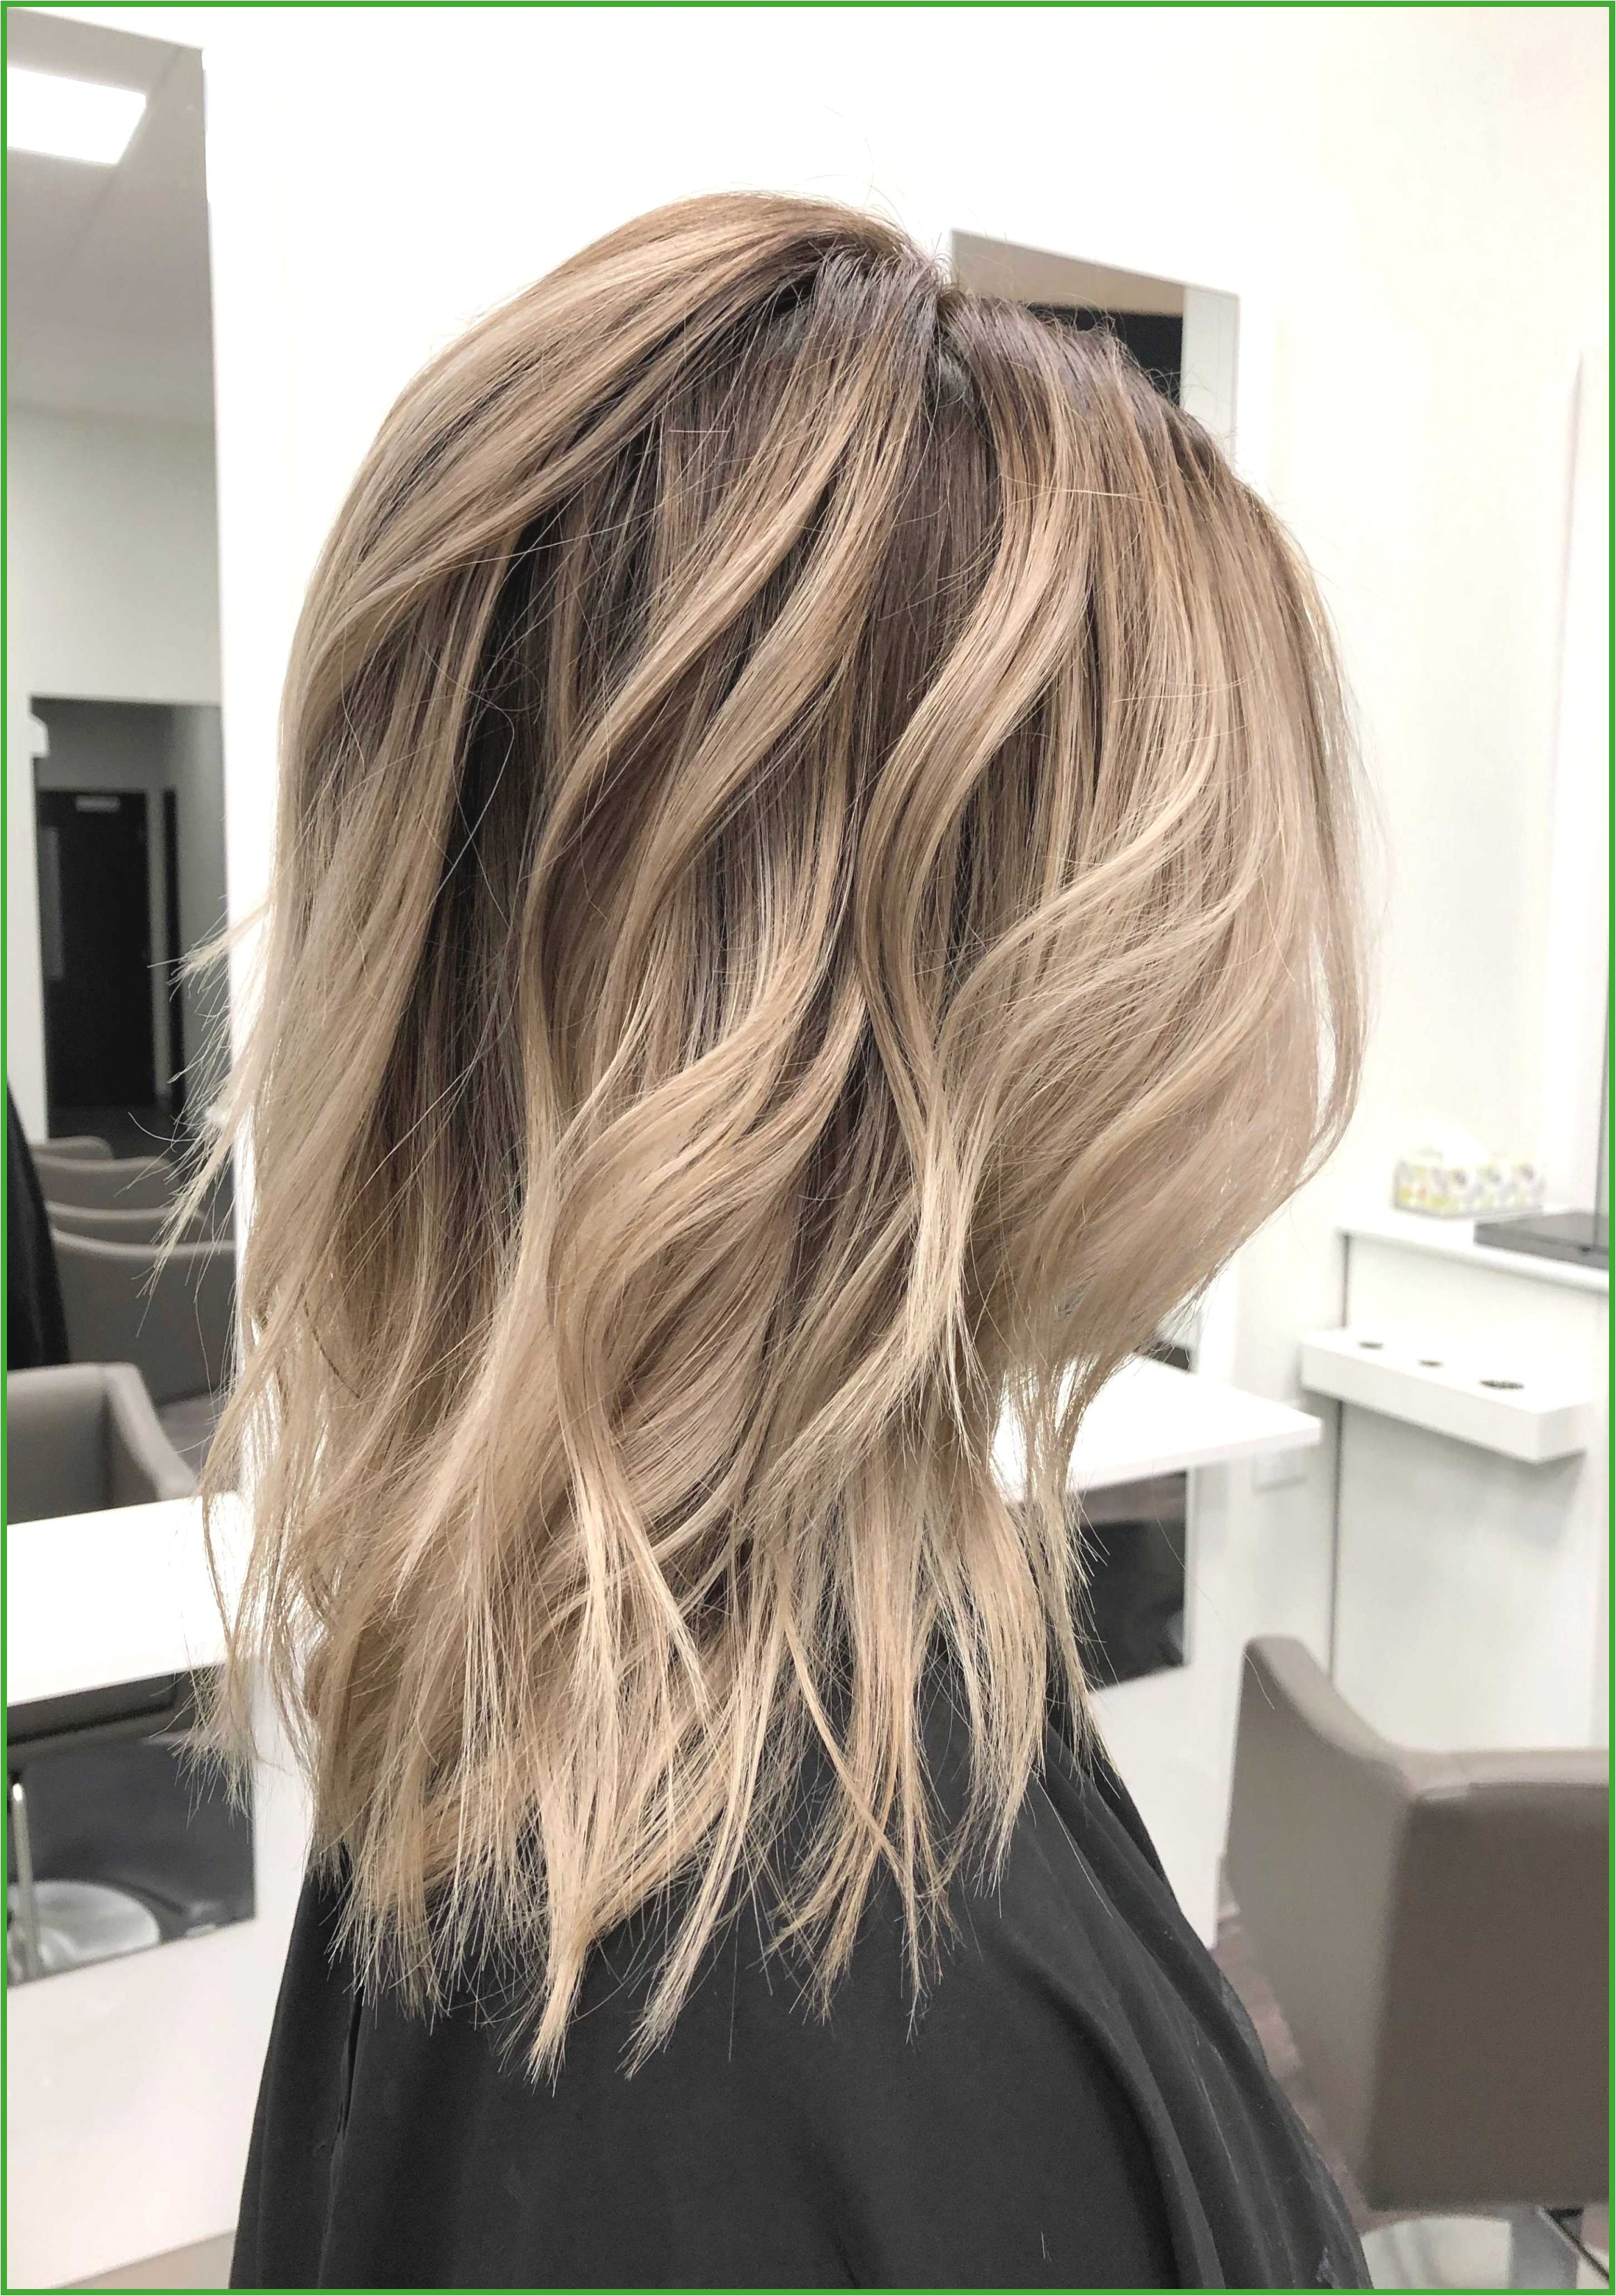 Long Thick Hairstyles Fresh Hairstyles for Medium Hair with Layers Elegant I Pinimg 1200x 0d 60